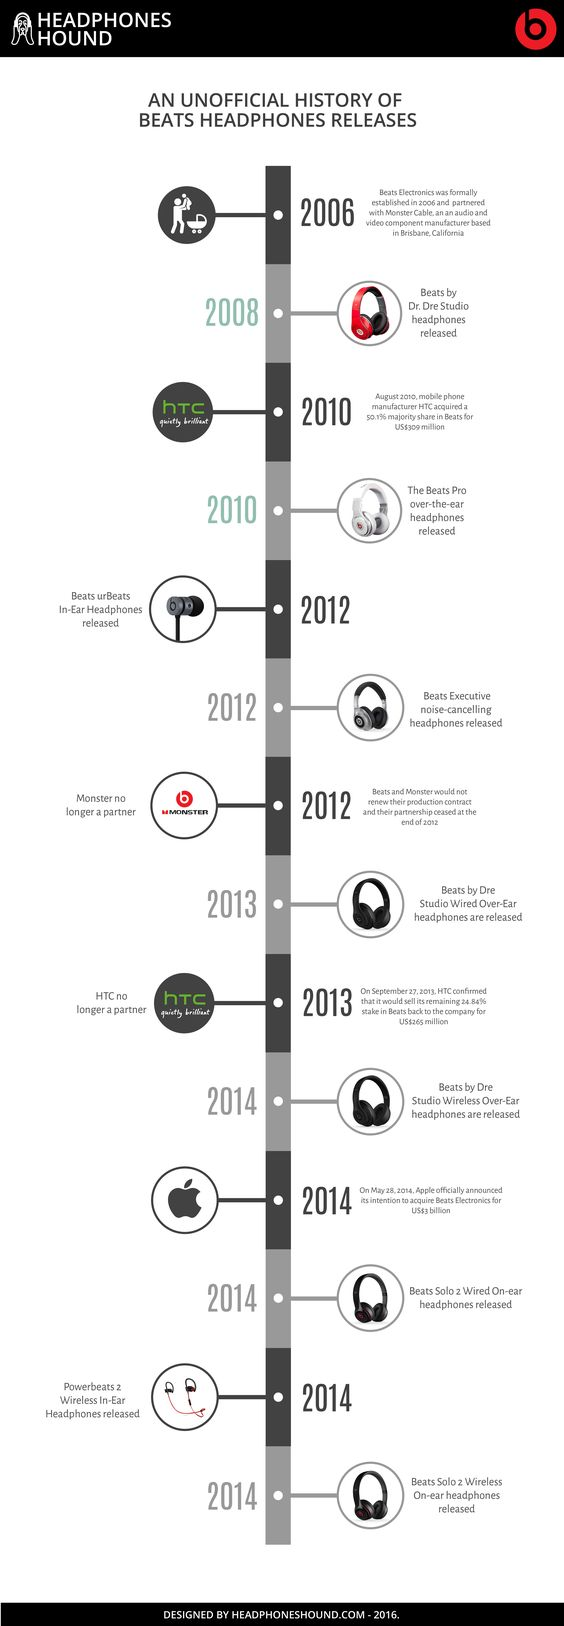 In this Infographical post we take a look at the history of Beats Electronics' headphones releases since the company's formation back in 2006. For best viewing of this infographic, you can download the Headphones Hound Unofficial Infographic PDF of The History of Beats Headphones at headphoneshound.com